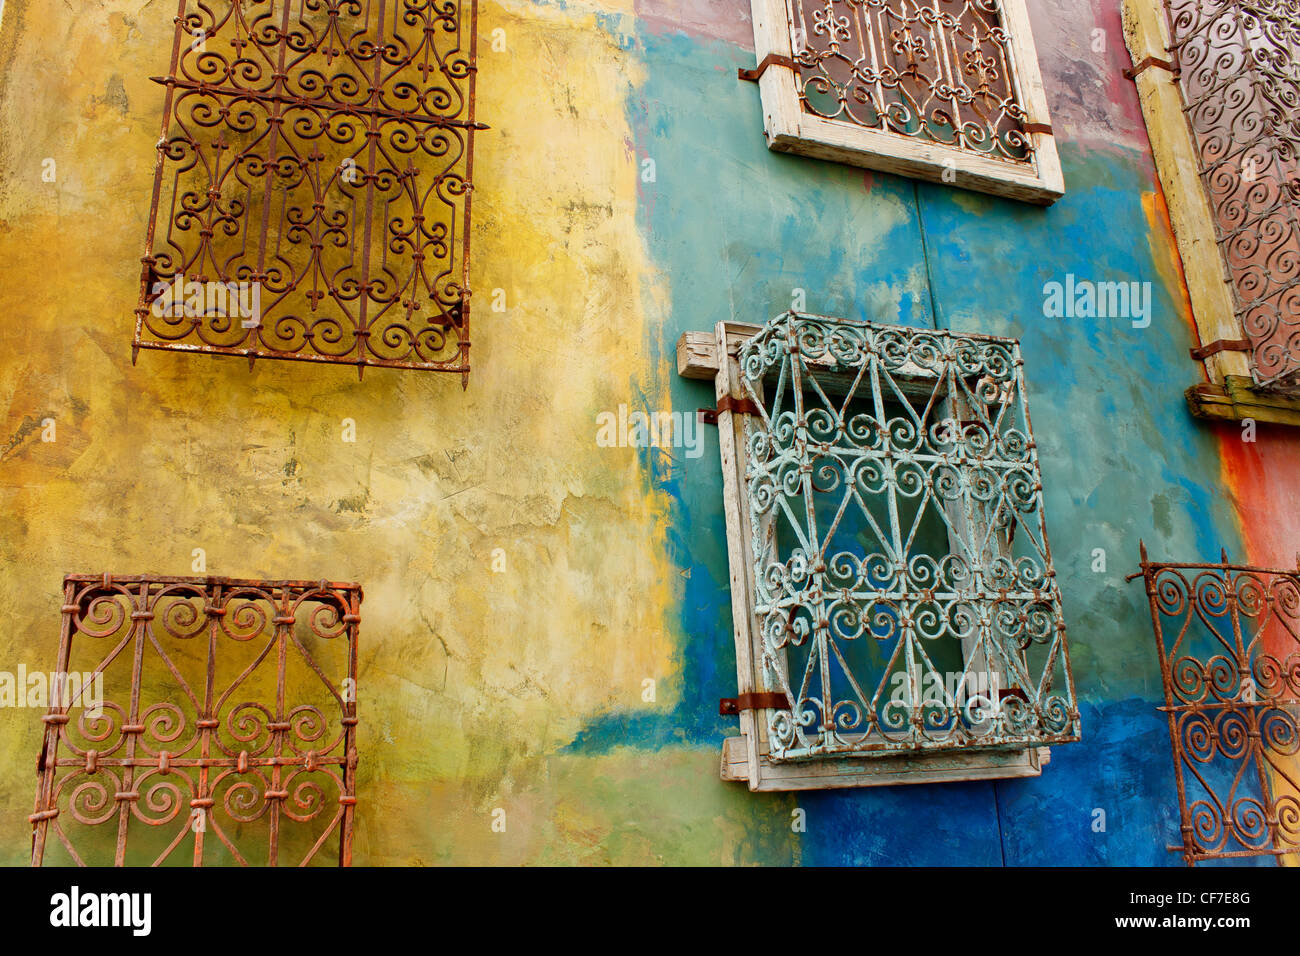 Colorful wall with wrought iron window covers in upscale ...